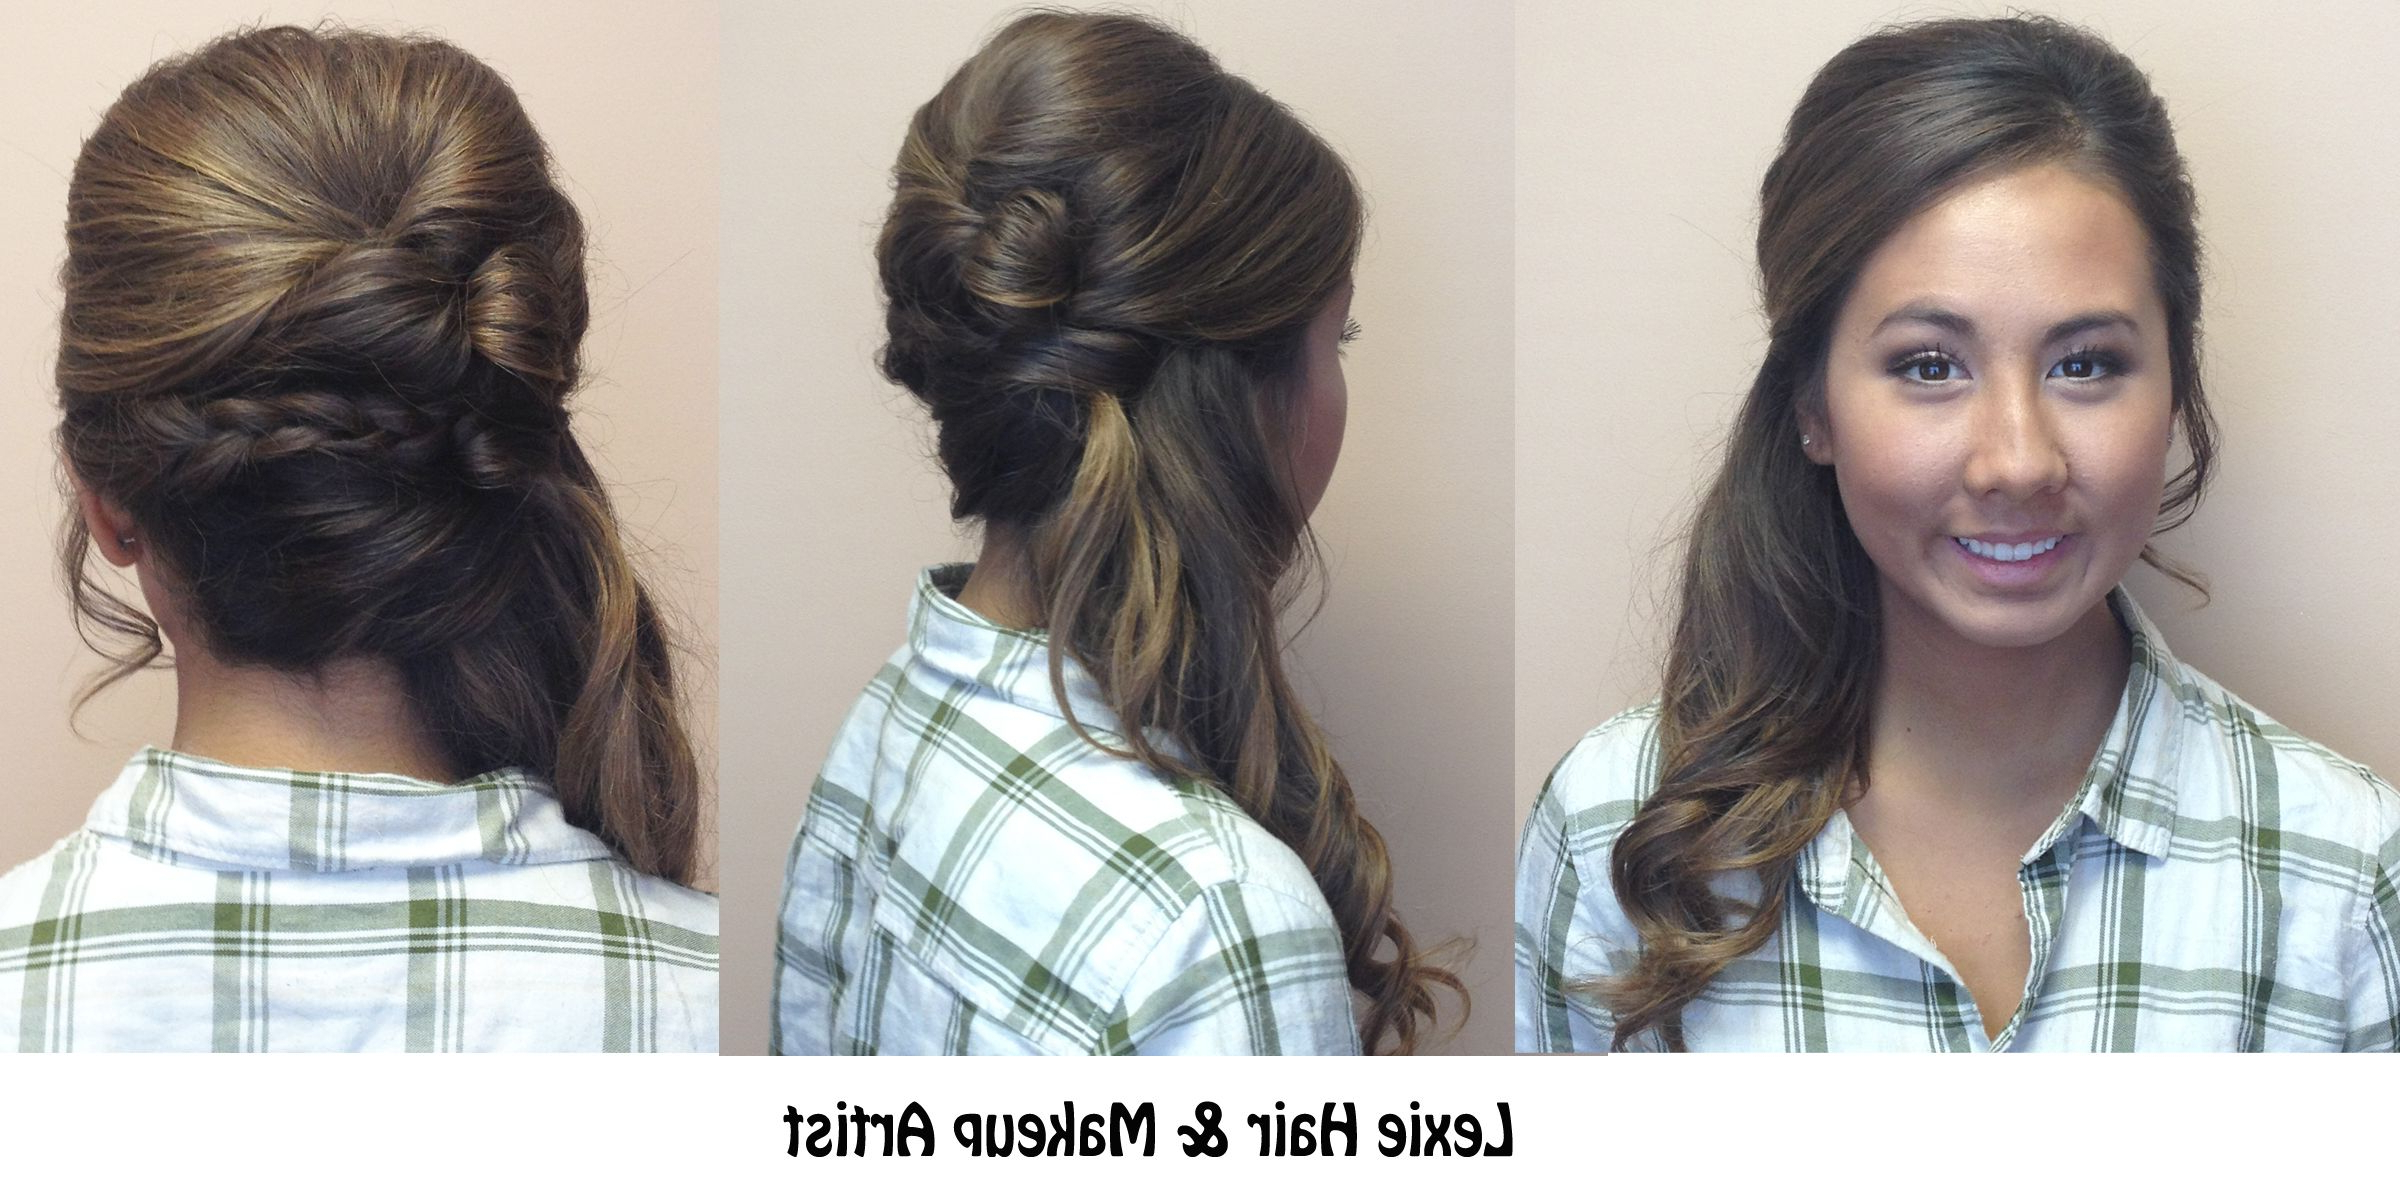 Side Ponytail With Braid And Volume: Wedding, Prom, And Special Within 2017 Textured Side Braid And Ponytail Prom Hairstyles (Gallery 5 of 20)